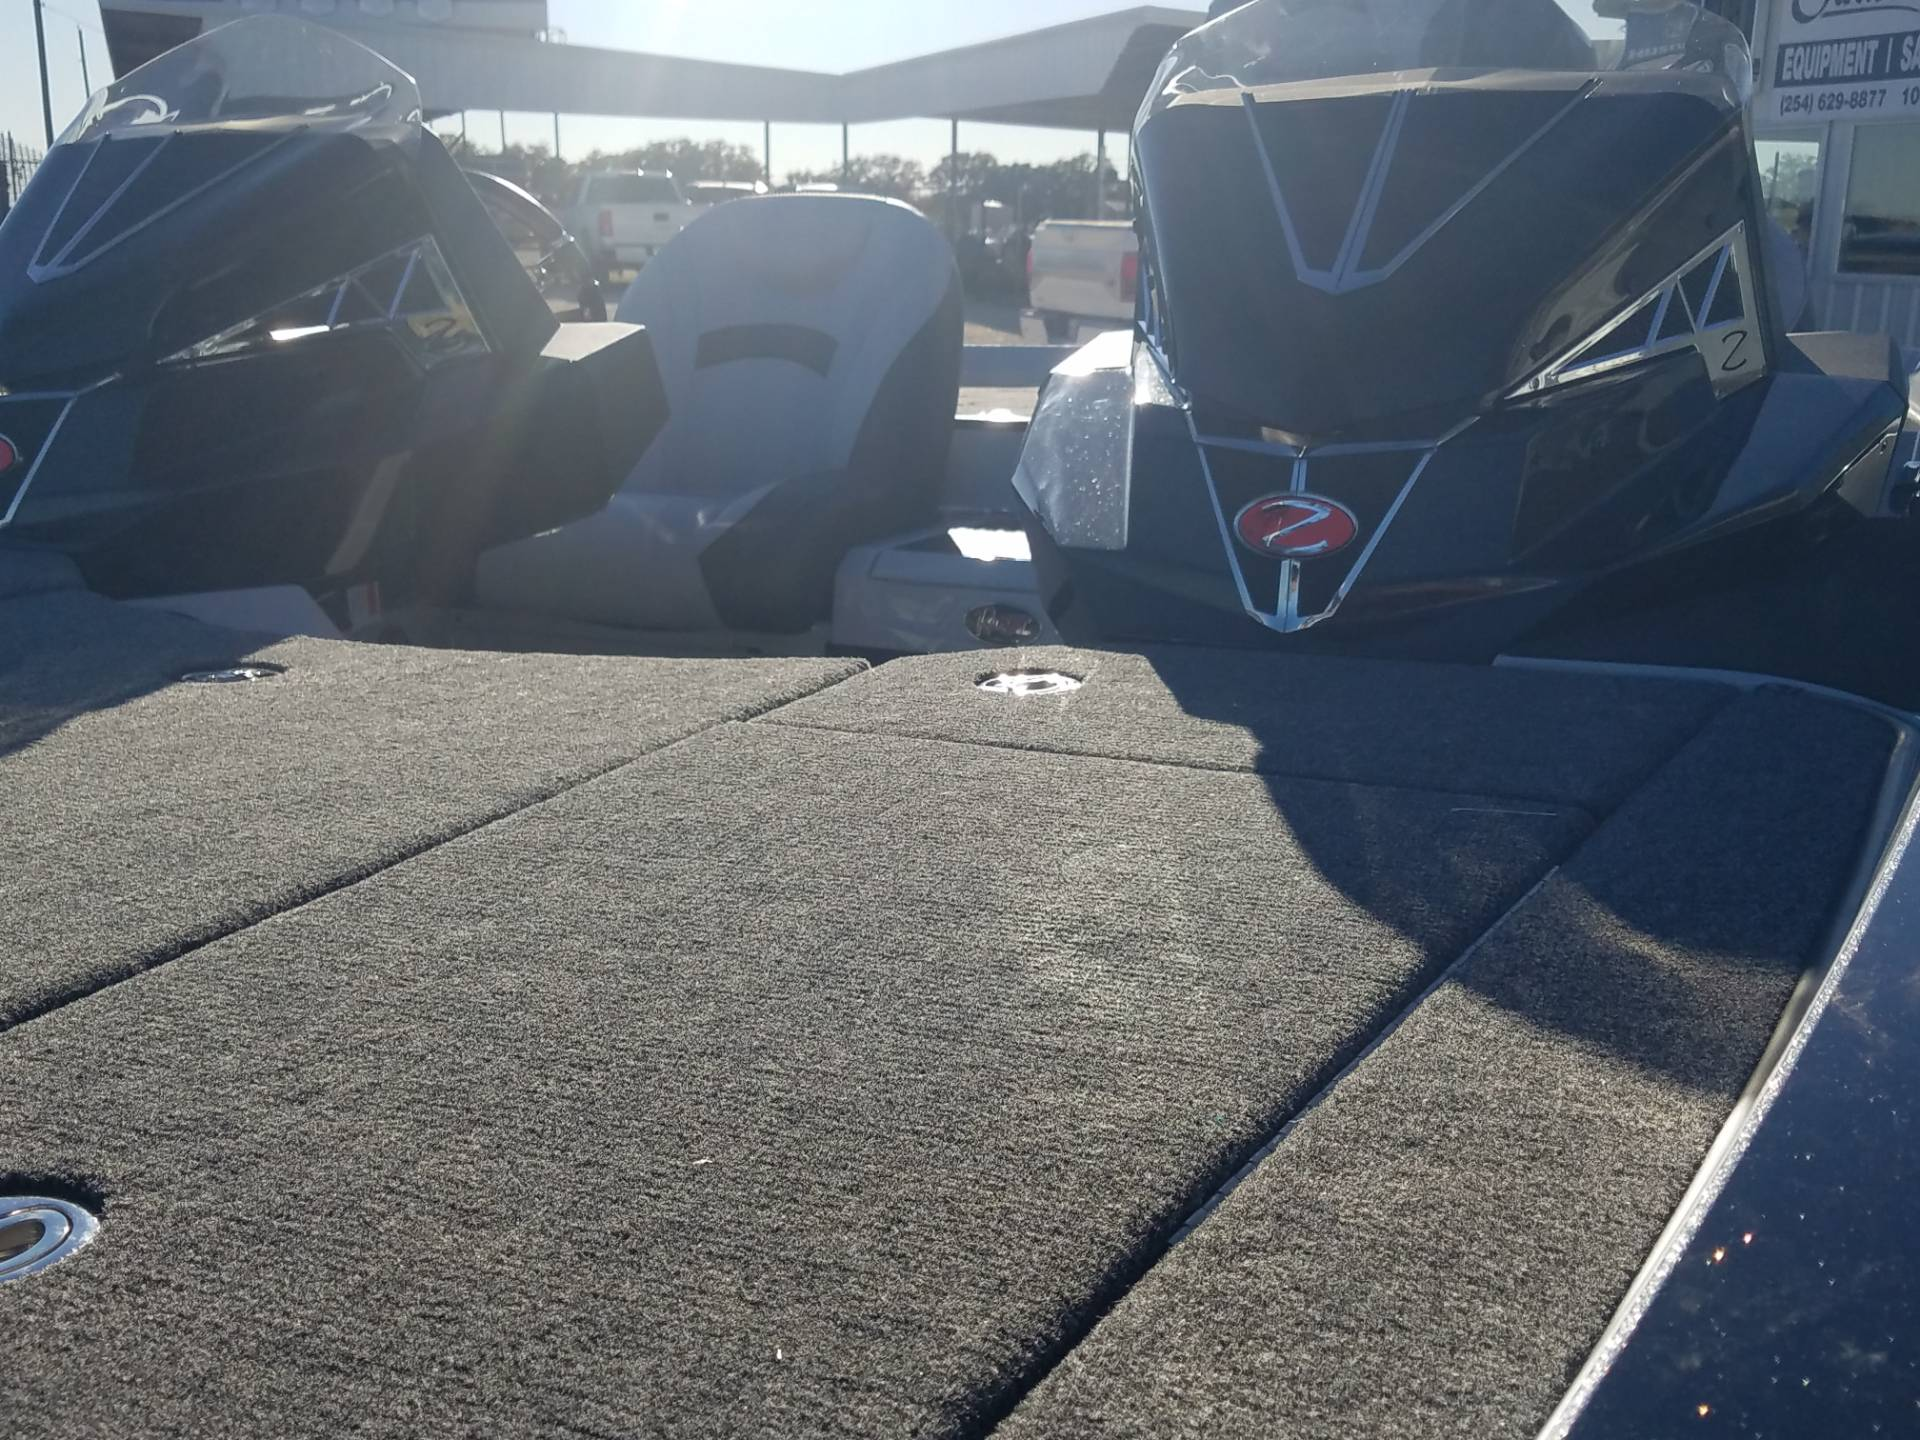 2021 Ranger Z521L Touring Package w/ Dual Pro Charger in Eastland, Texas - Photo 13